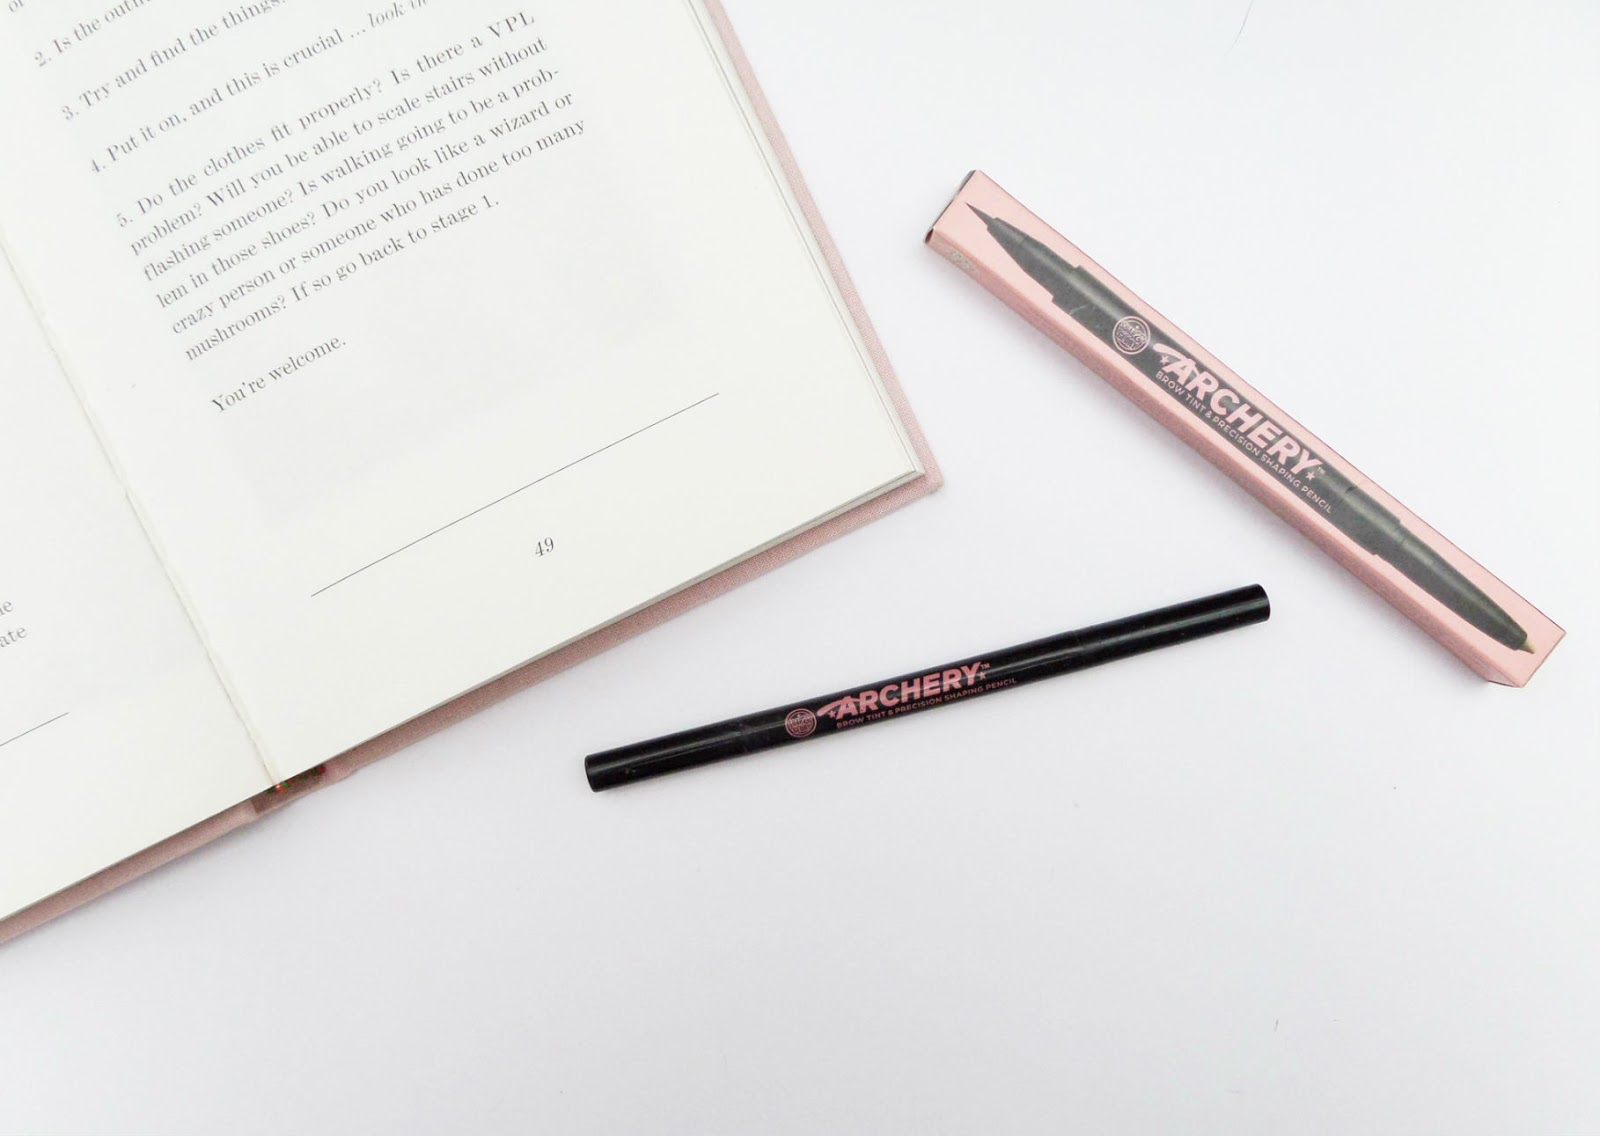 The Soap and Glory Brow Archery Love is Blonde Review